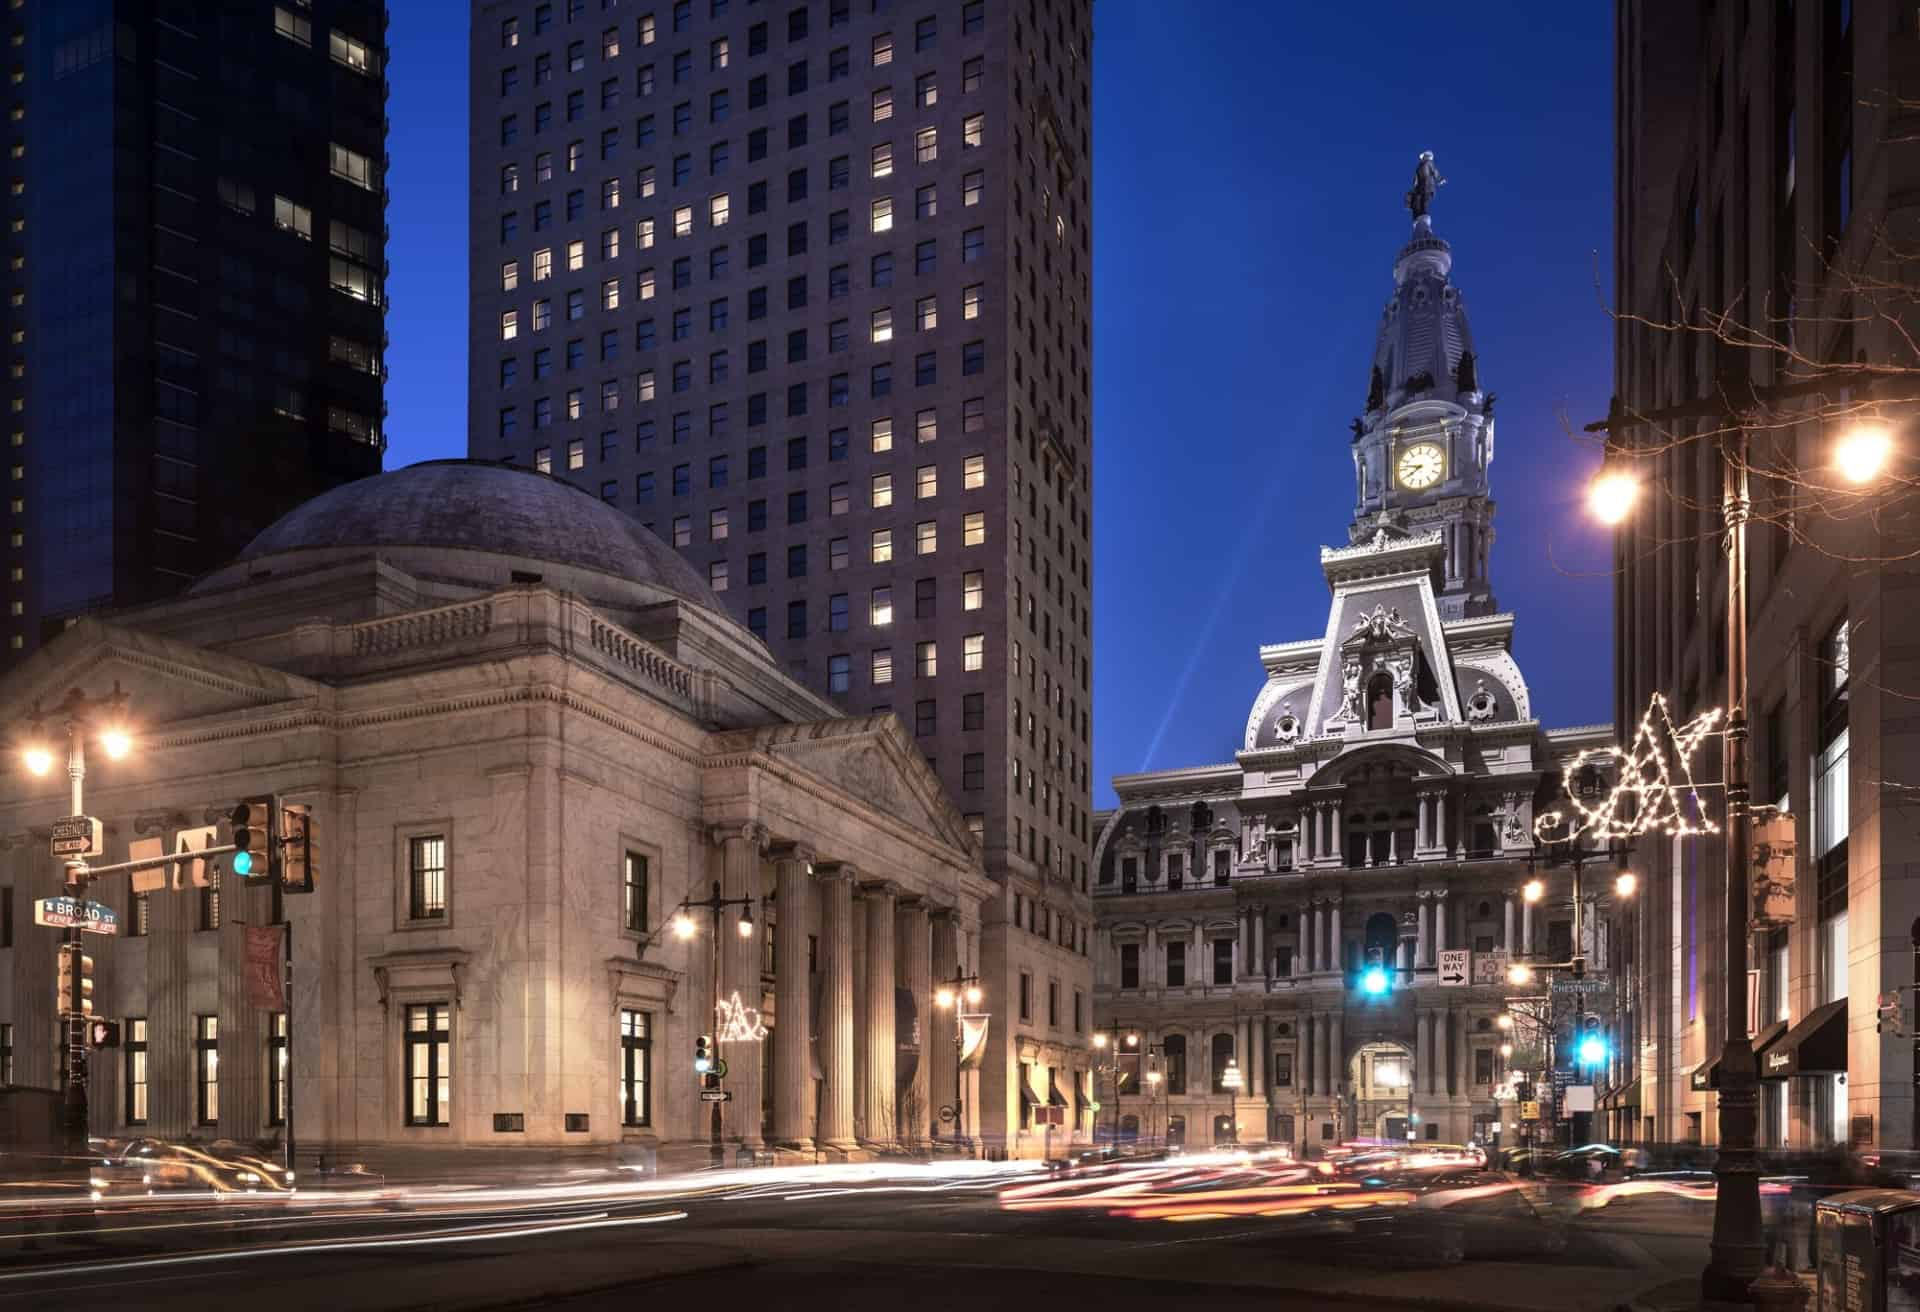 Exterior night view of The Ritz-Carlton, Philadelphia